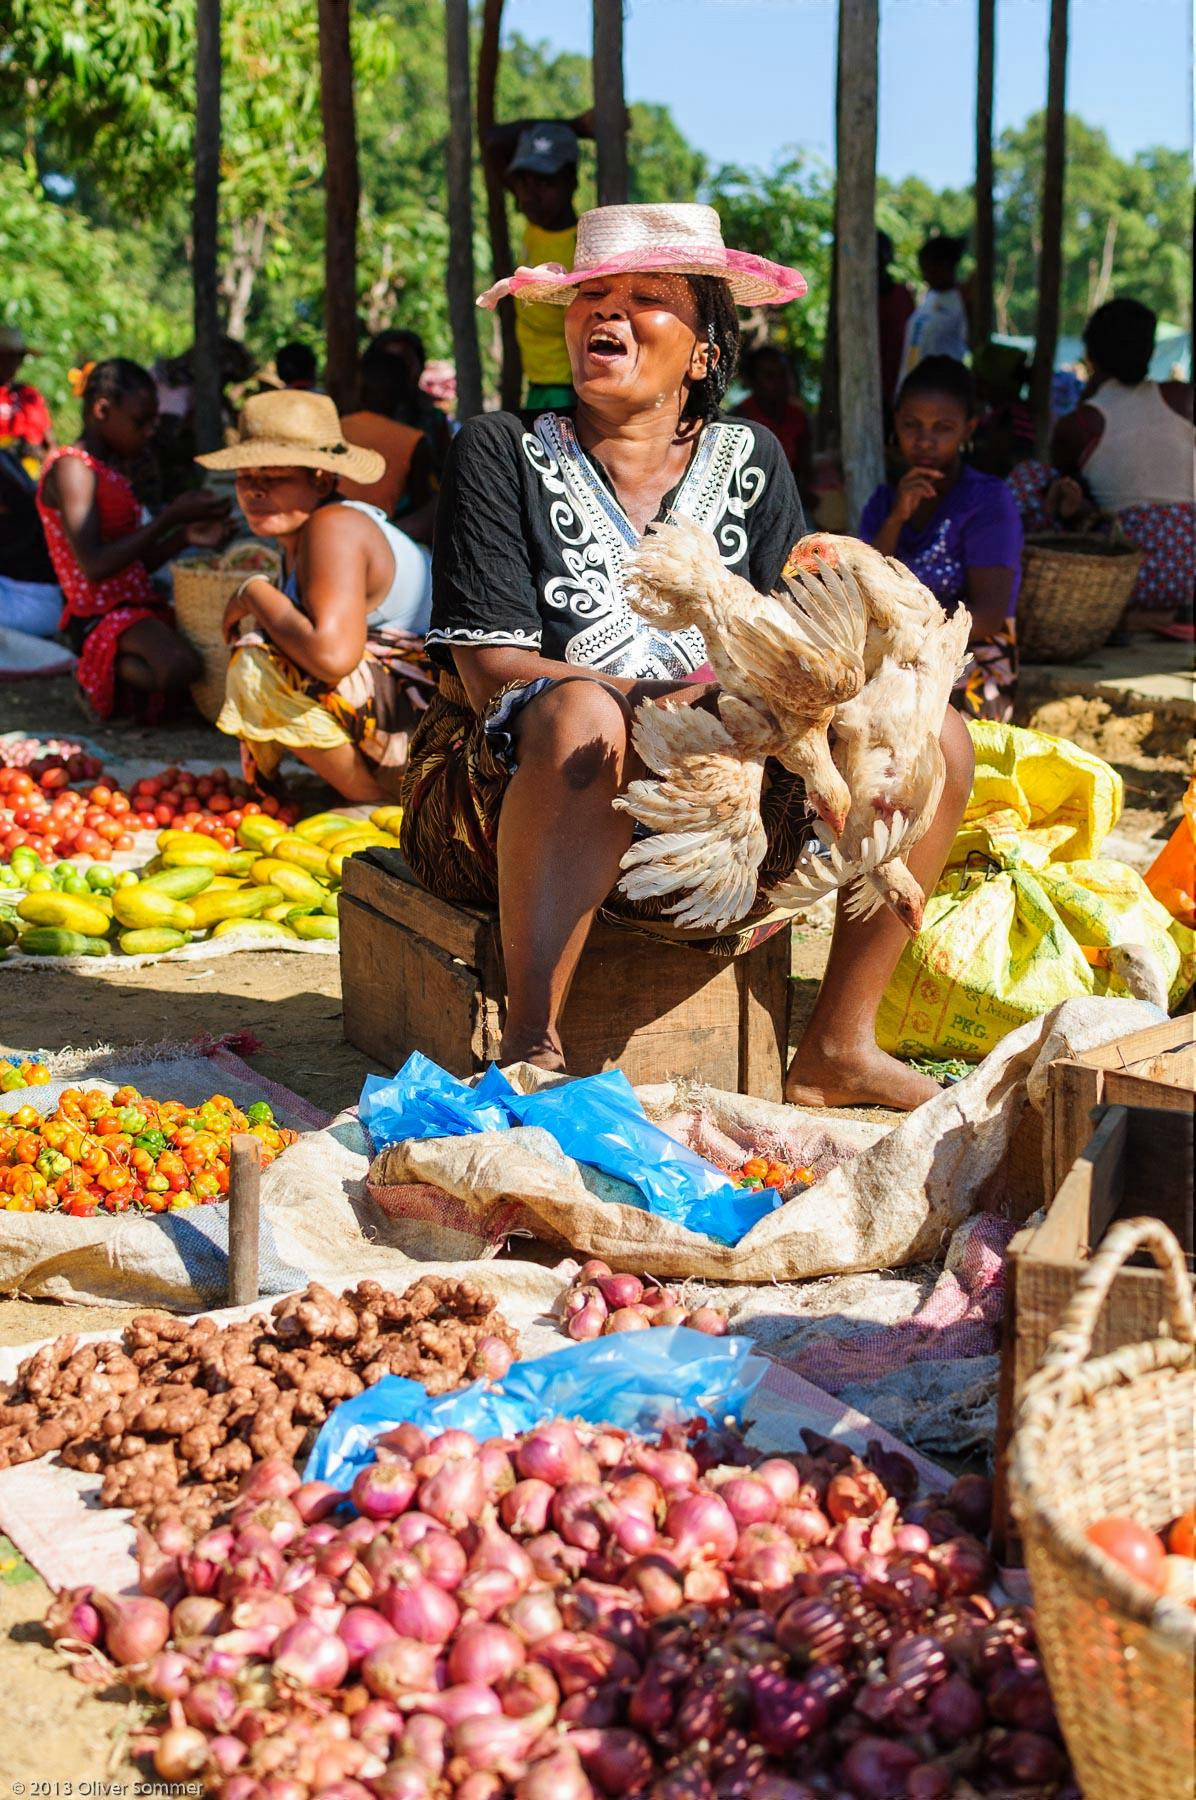 Additive, Africa, African, Beramanja, Black, Chicken, Chili, Civilization, Condiment, Cultural Site, Culture, Customs, Female, Food, Ginger Root, Greens, Happy, Hat, Jalapeno, Laugh, Laughing, Lifestyle, Madagascar, Malagasy, Market, Meat, Nutriment, Nutrition, Onion, Onions, People, Peppers, Person, Portrait, Sales person, Seasoning, Seasonings, Smile, Smiling, Society, Spice, Spices, Tomato, Tomatoes, Tour, Tourism, Traditional, Travel, Trip, Vegetable, Vegetables, Woman, Women, _Other, additives, art, condiments, dIANA Region, destination, excursion, grin, human, journey, legume, madagasikara, malagasy, northern Madagascar, nutriments, selling, tours